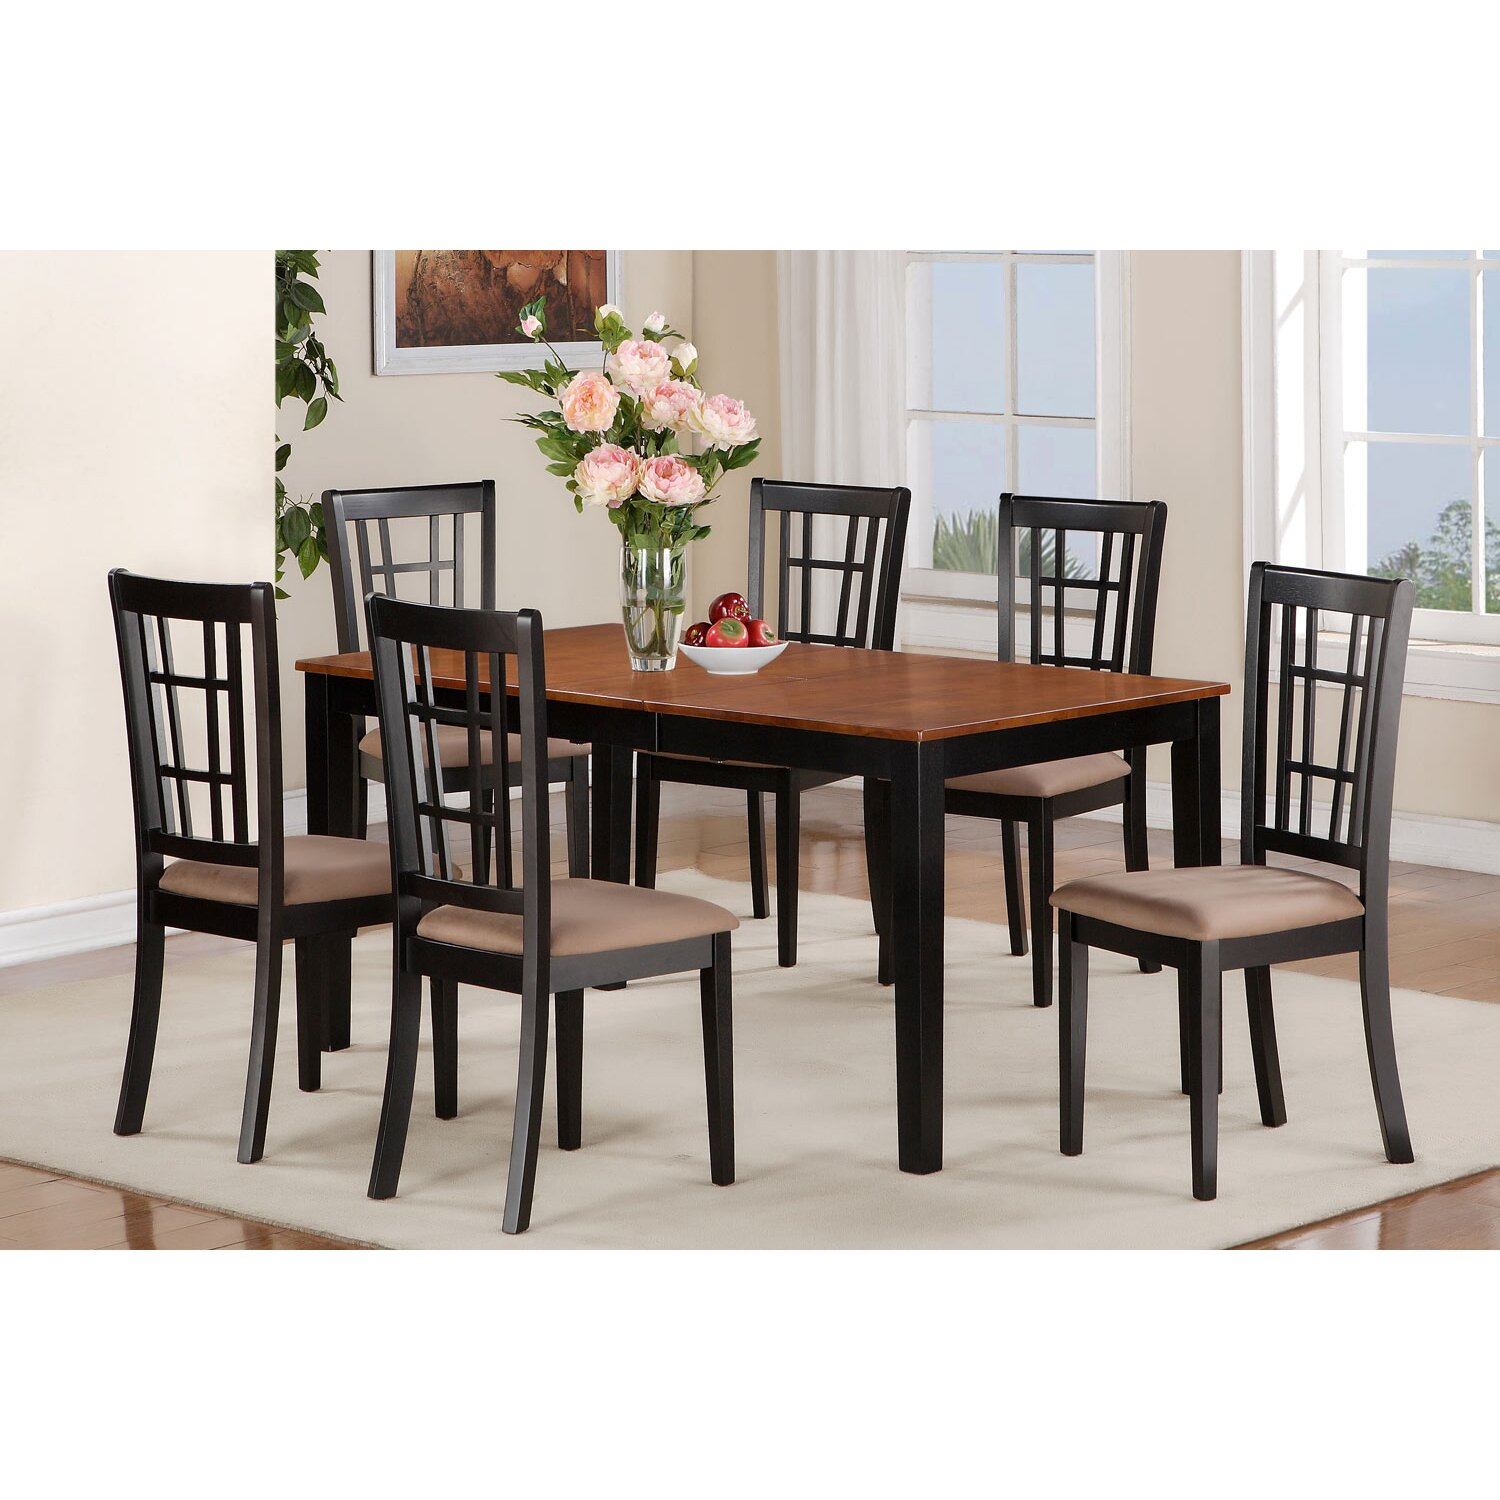 East west nicoli 7 piece dining set reviews wayfair for Kitchen dinette sets